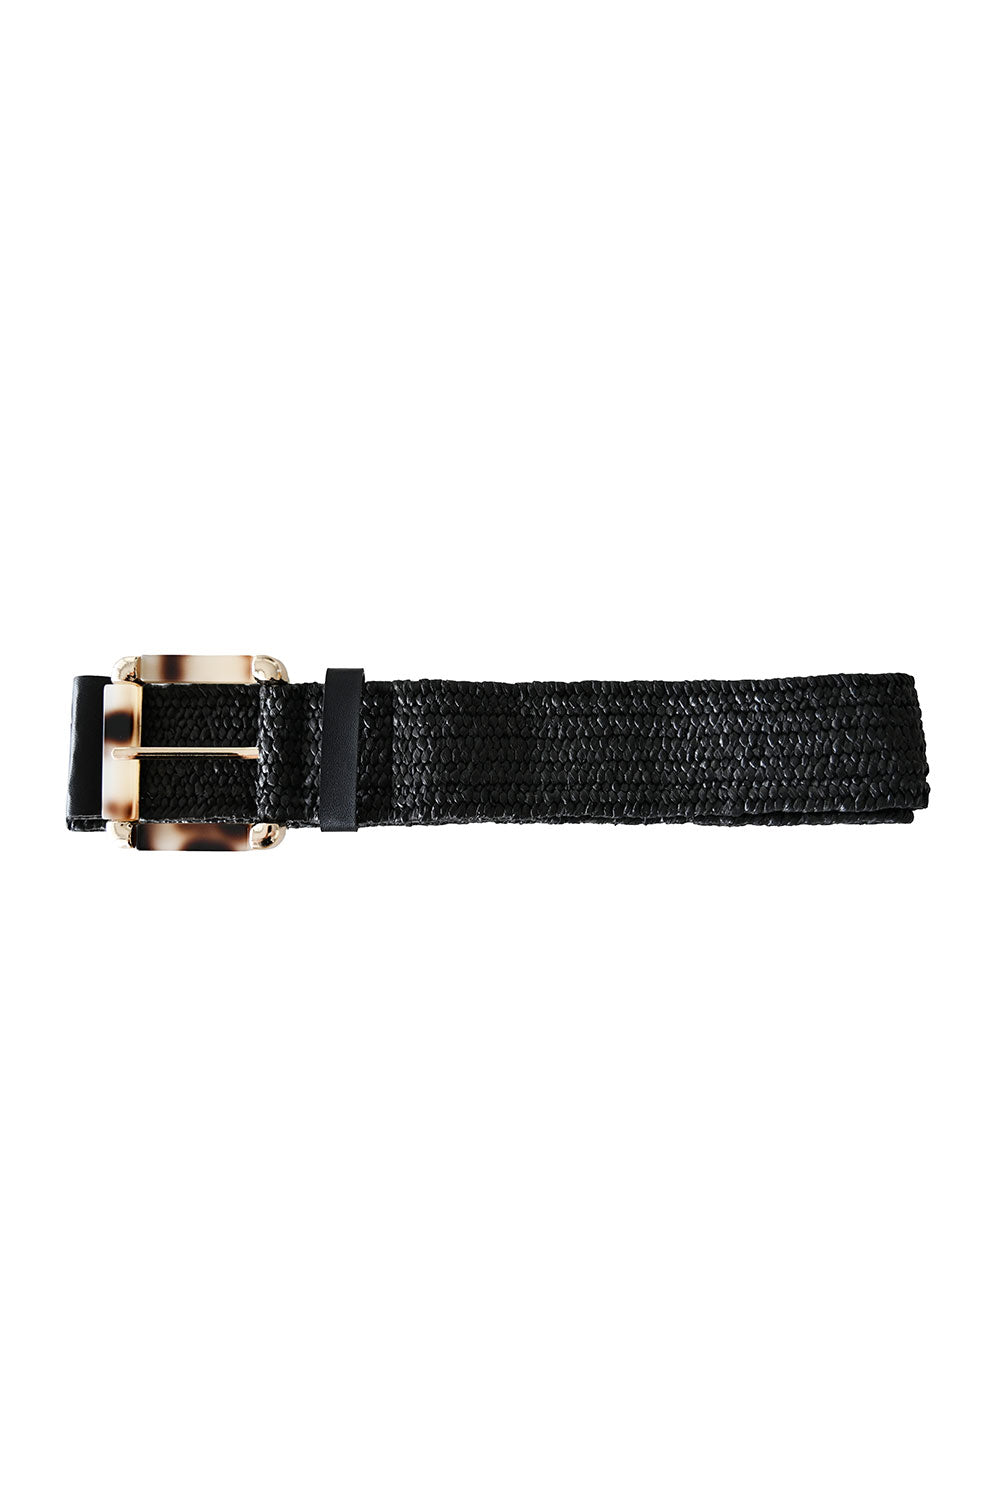 Sardinia Square Belt Black - Kabana Shop